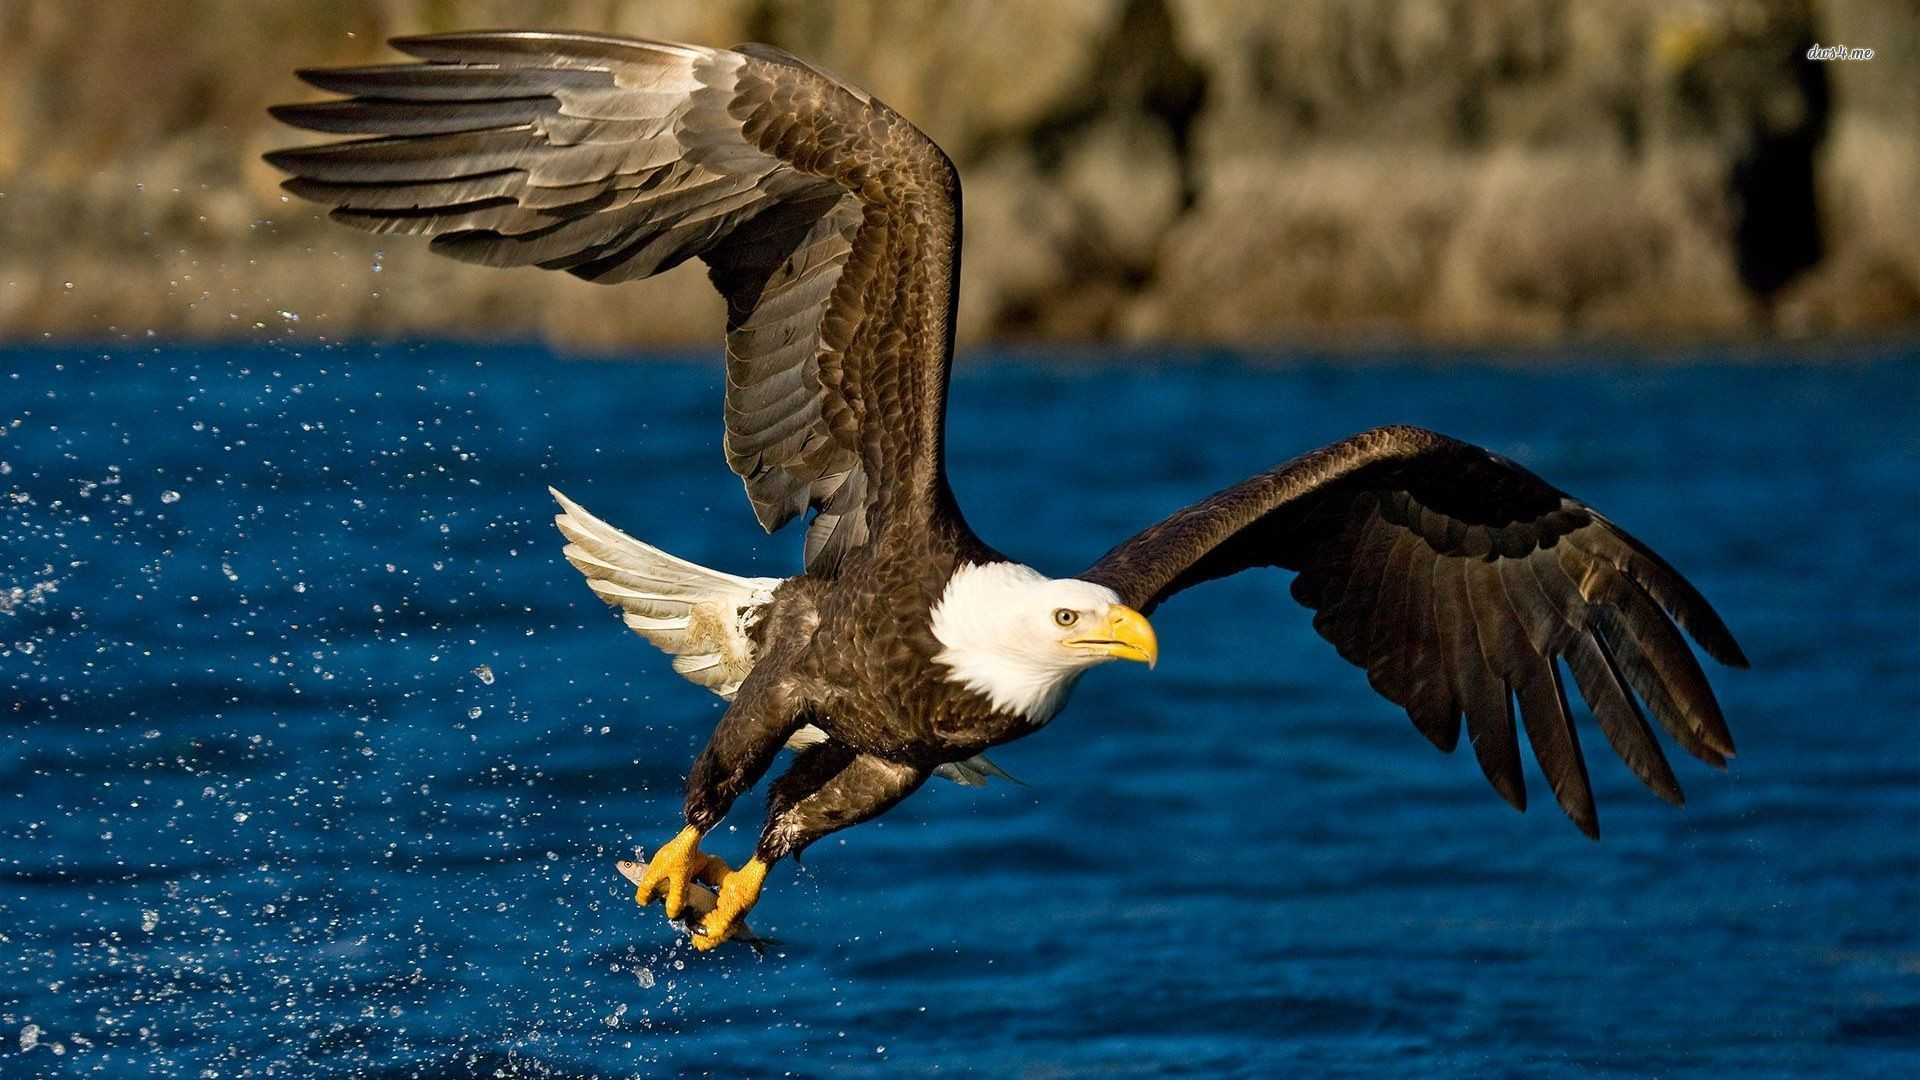 Eagle Wallpapers 66 Pictures